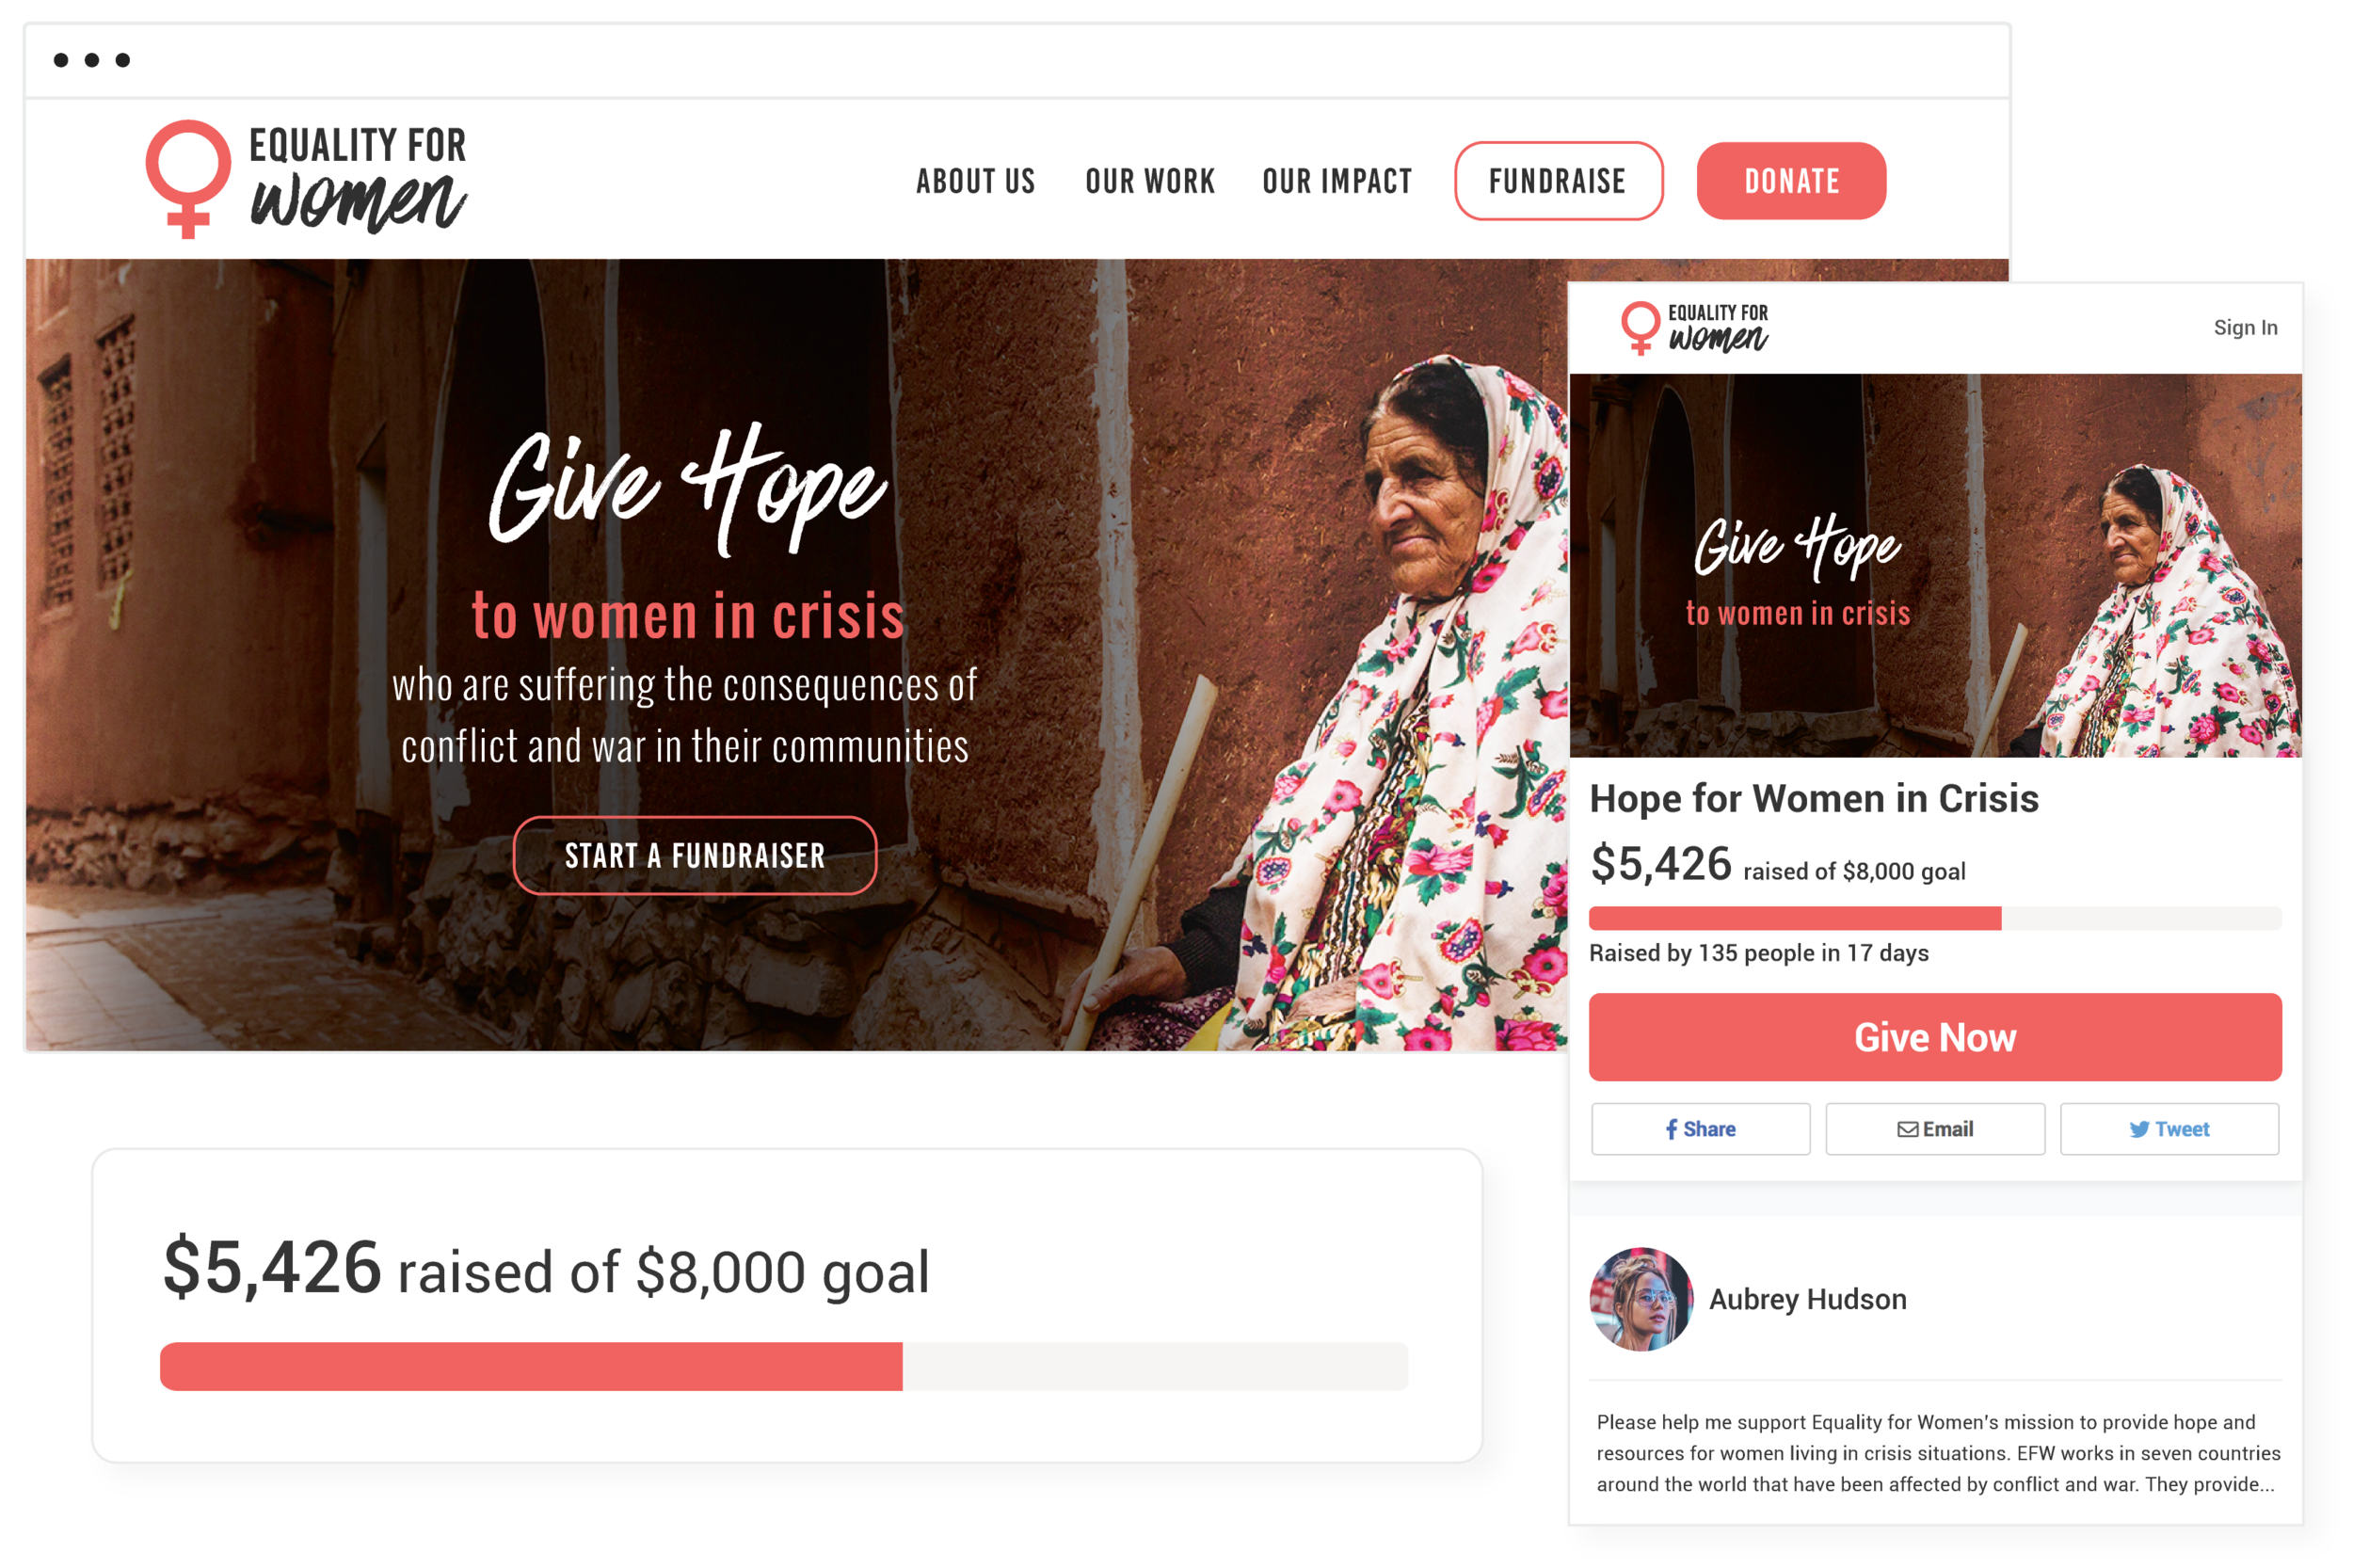 Let Your Donors Do the Fundraising - Mobilize supporters who are passionate about your mission with crowdfunding and peer-to-peer fundraising pages they can launch with a few clicks.